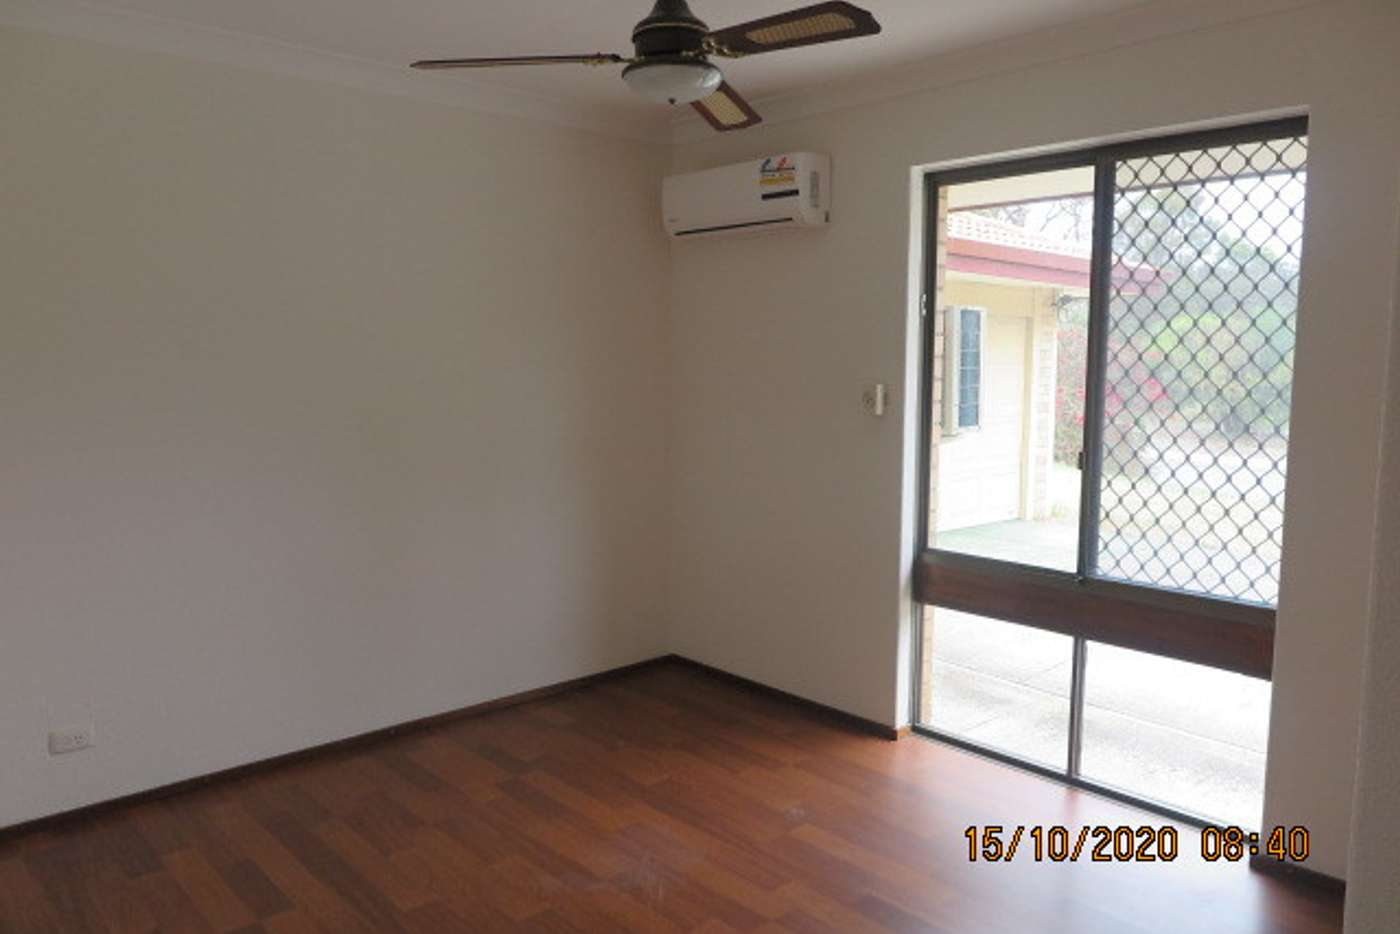 Sixth view of Homely house listing, 13 Chilcott Gardens, Gosnells WA 6110